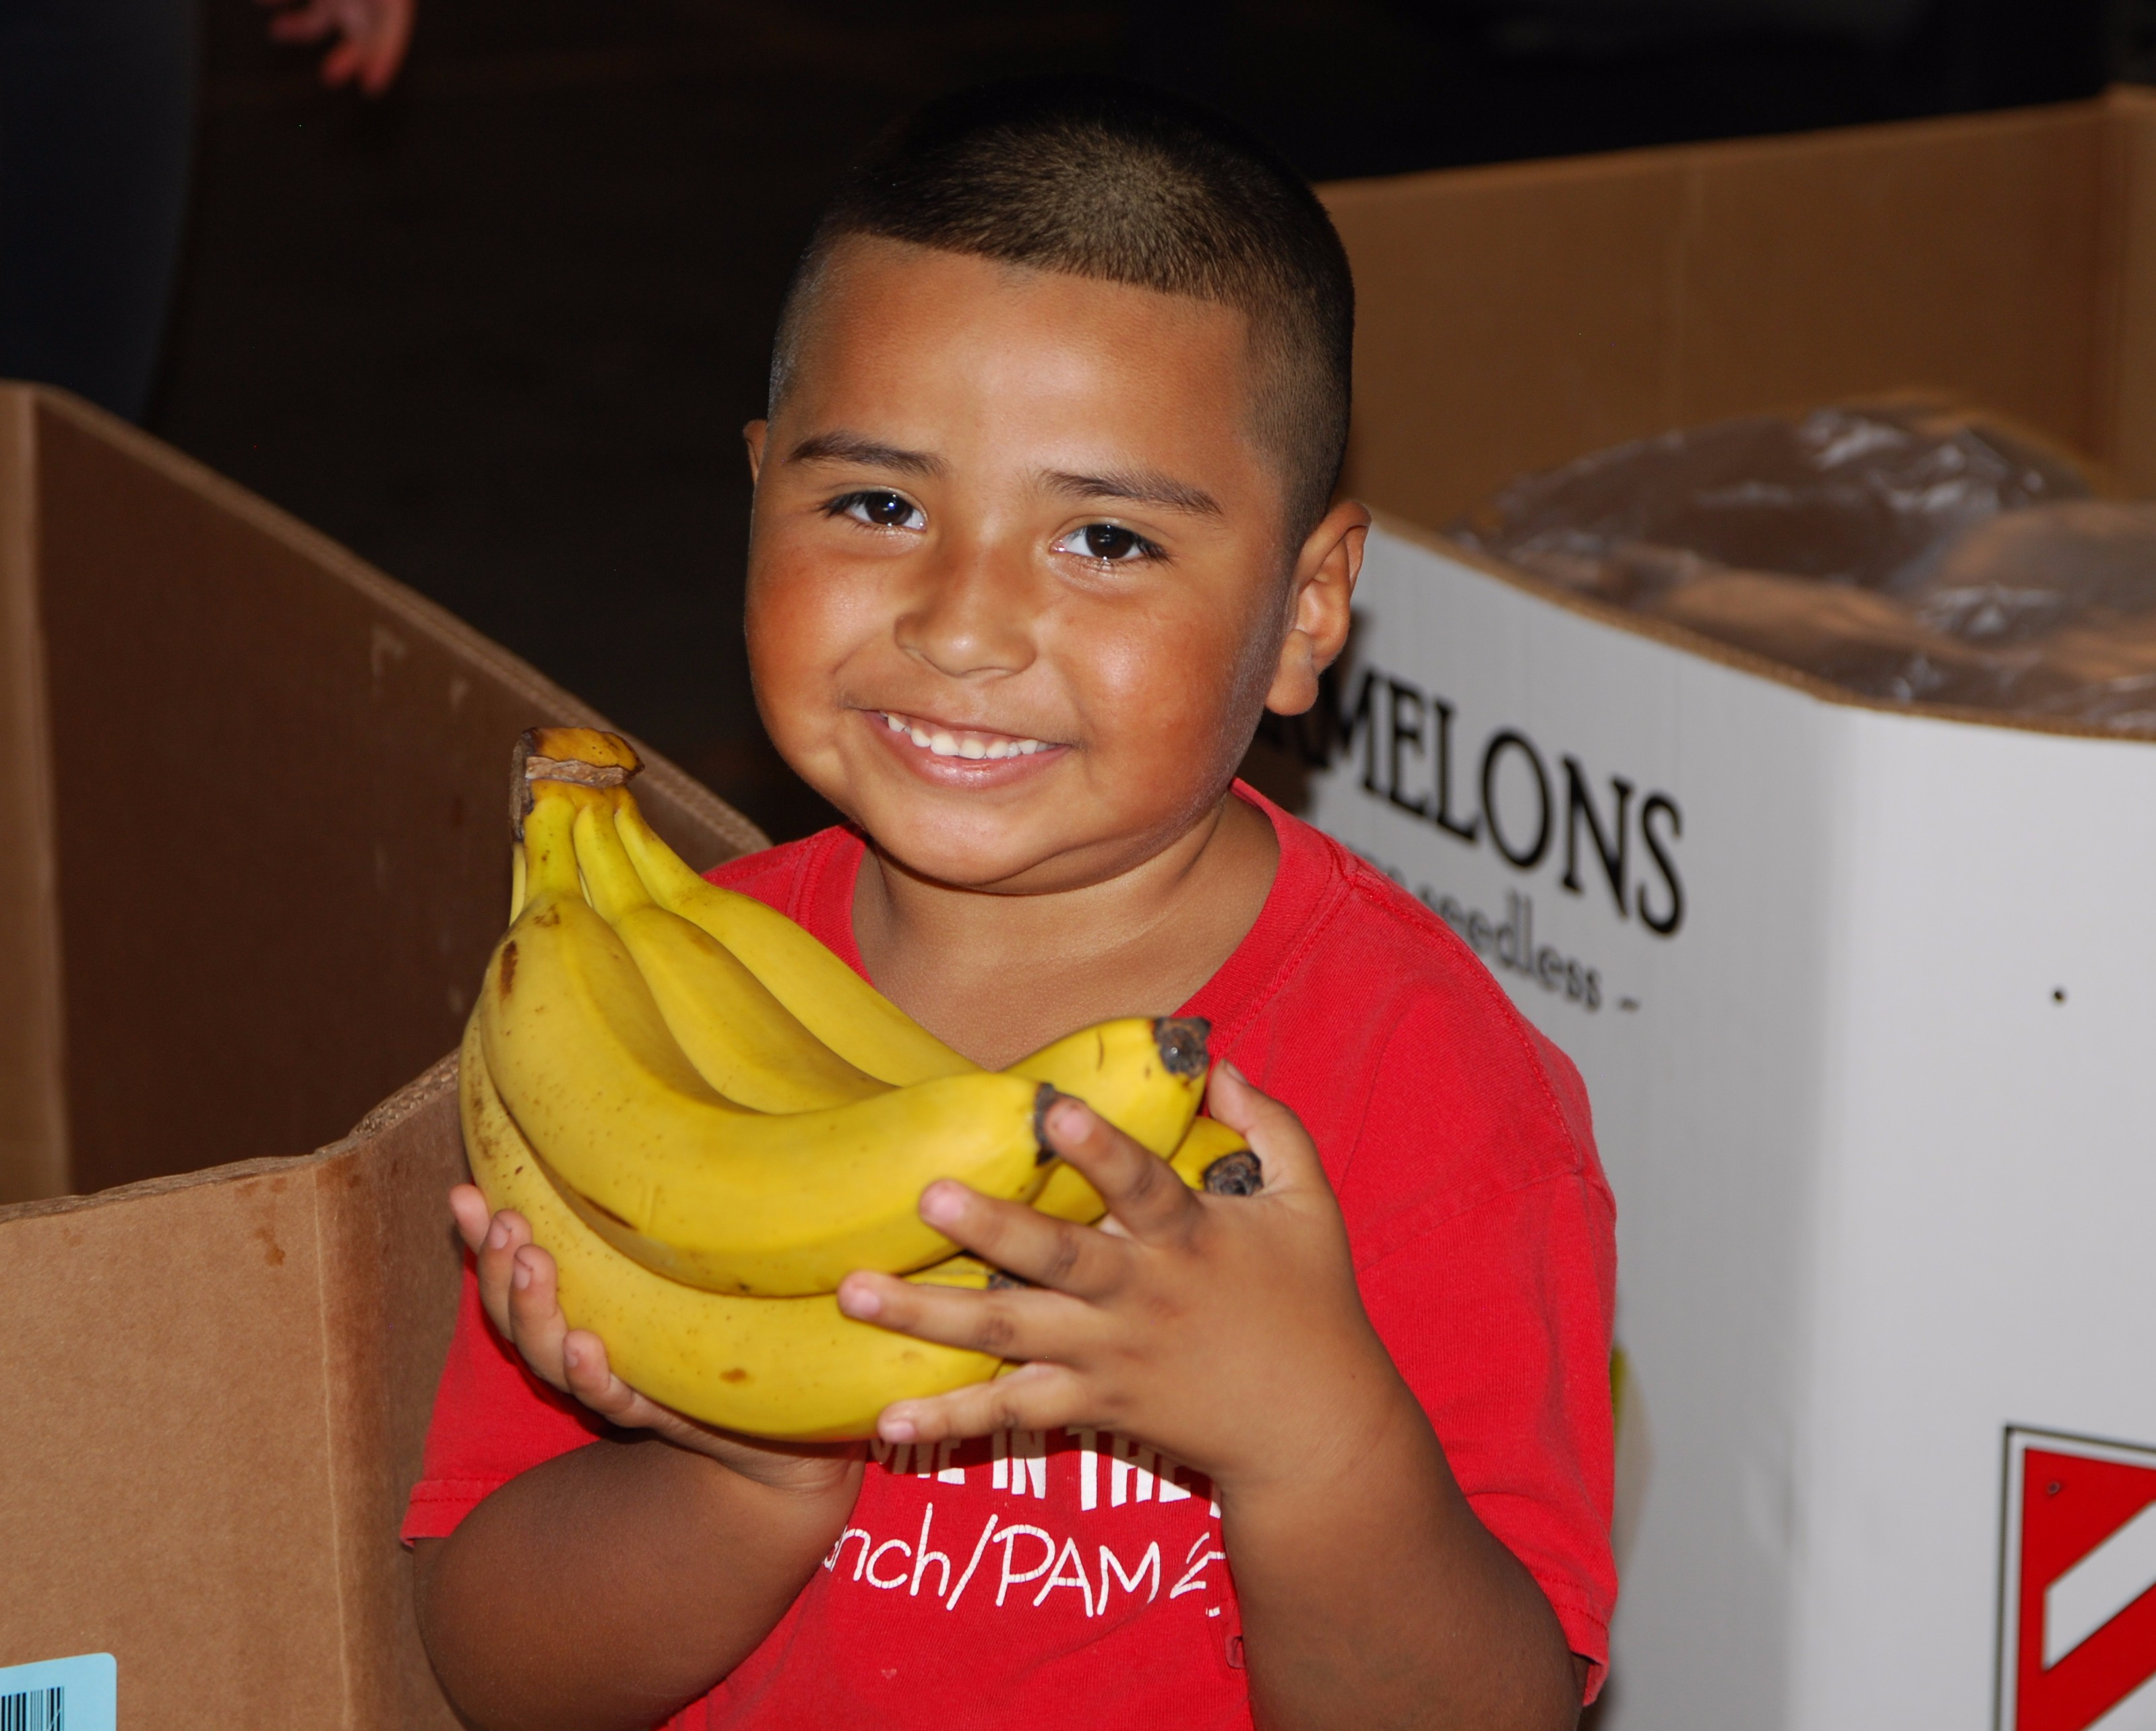 Give a year-end gift to help feed a family in need!